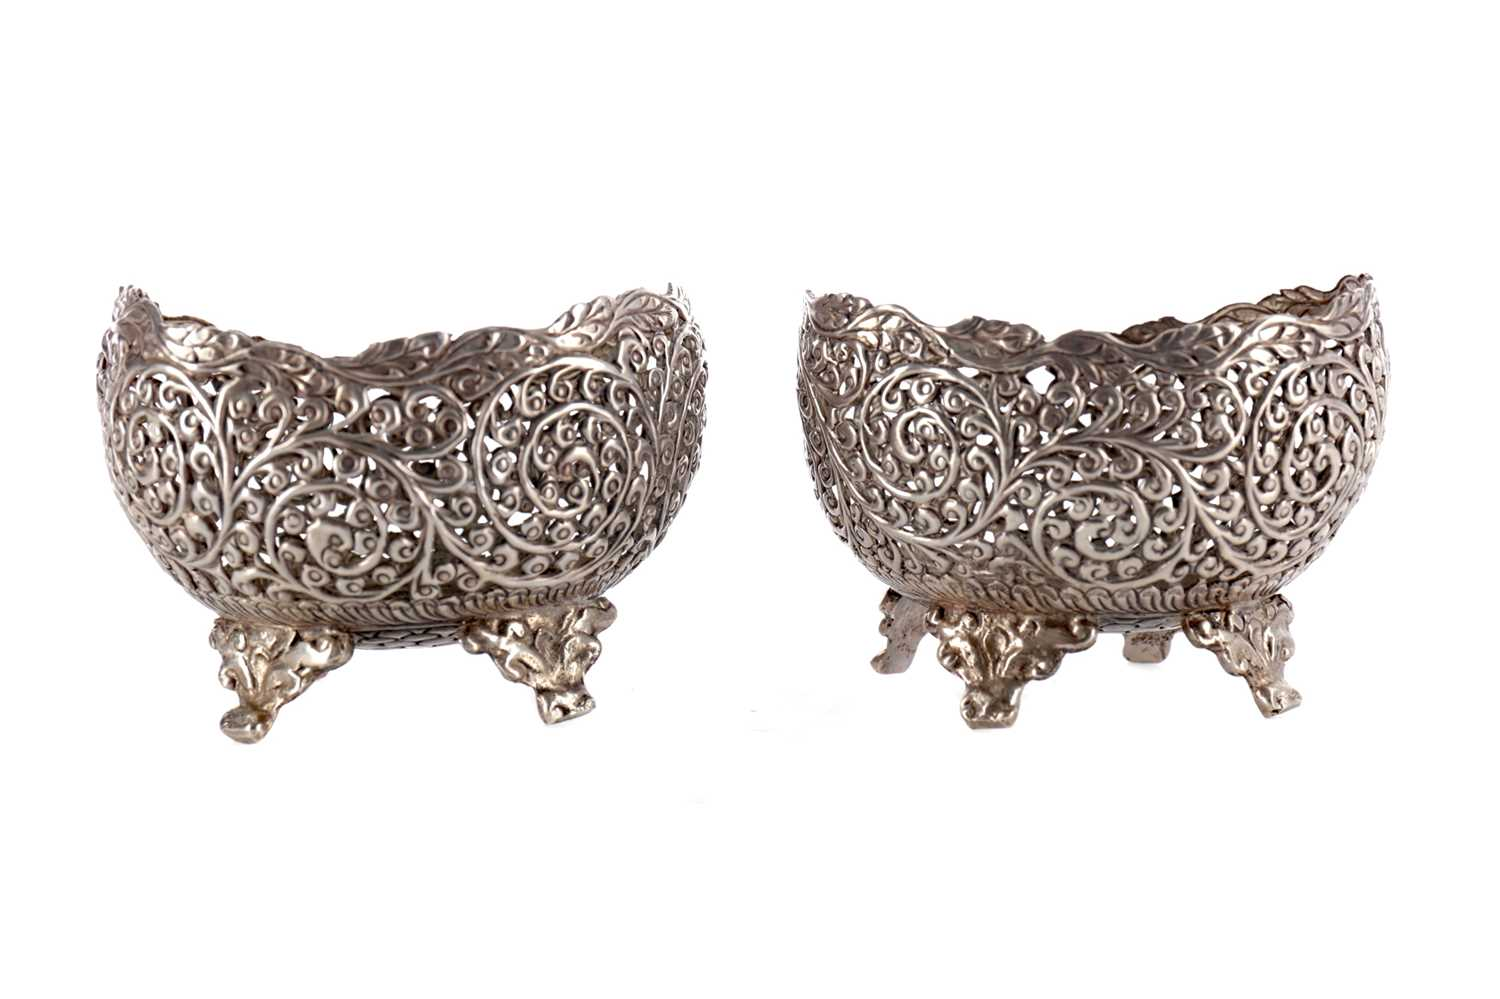 Lot 836 - A PAIR OF INDIAN SILVER OVAL BOWLS